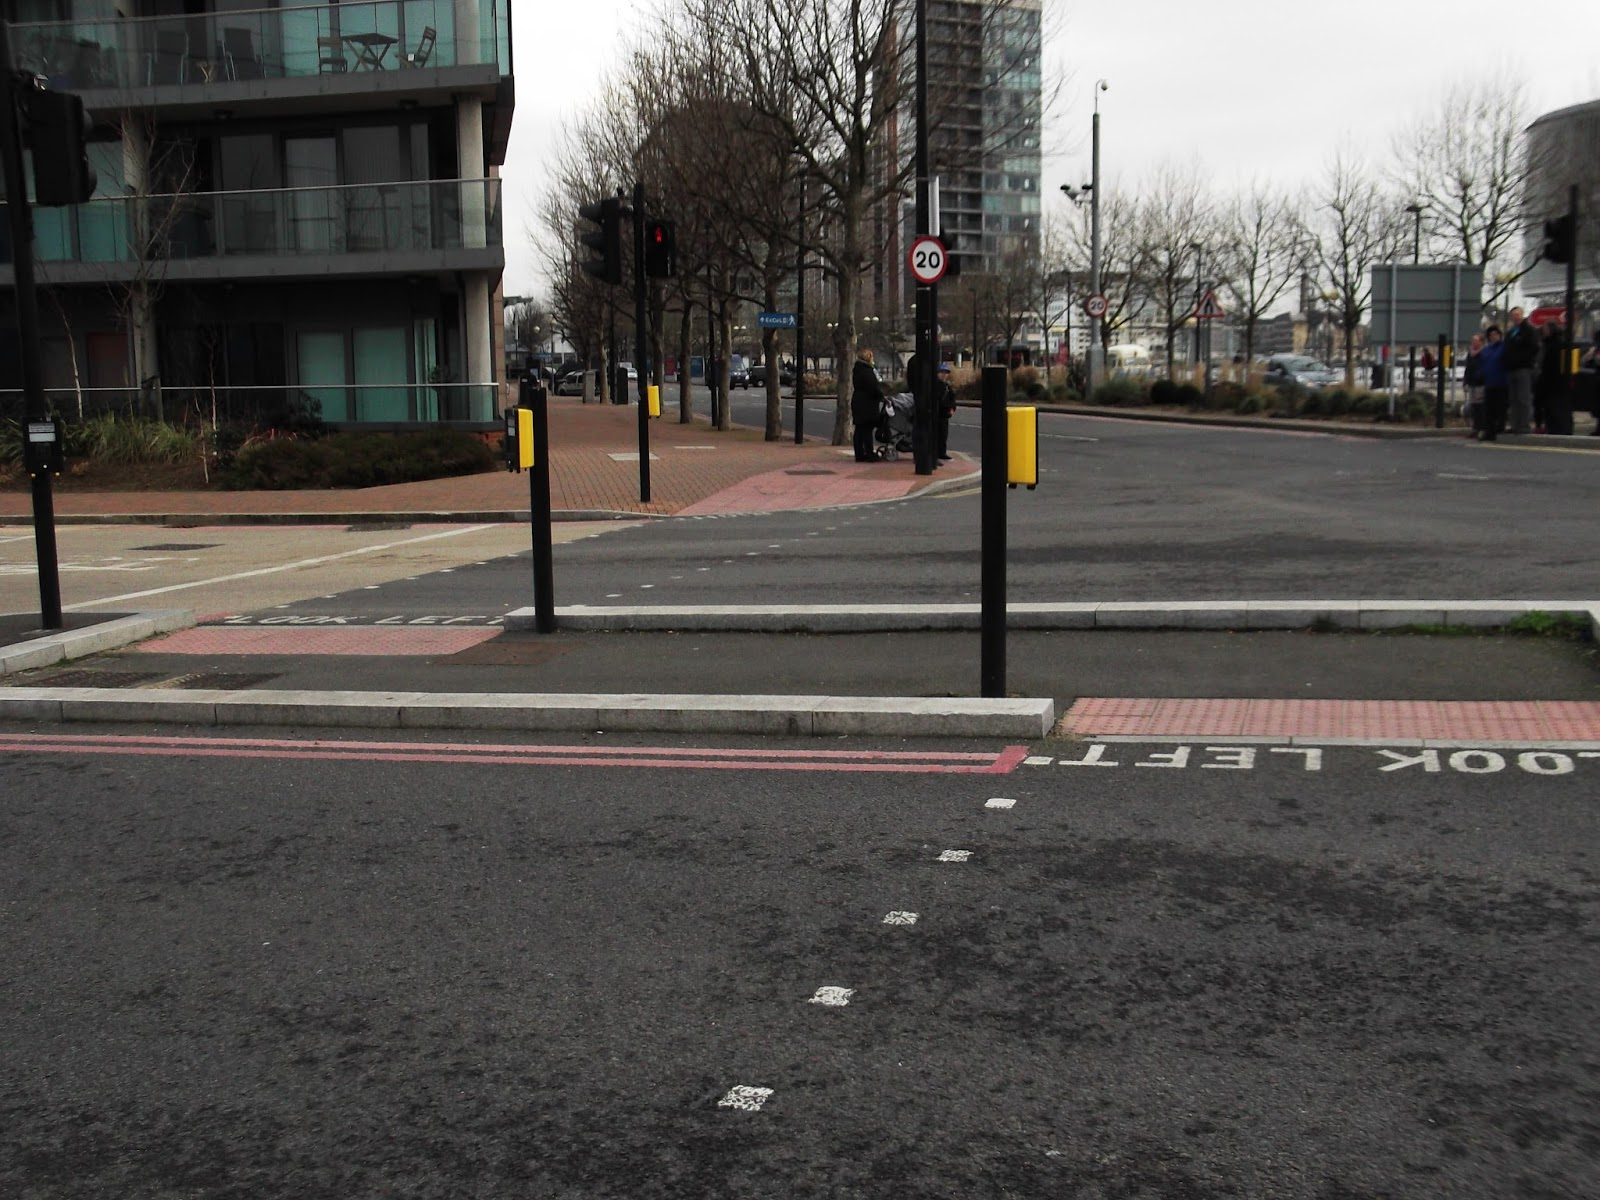 Diagonal pedestrian crossing. Crossroads with a pedestrian crossing diagonally